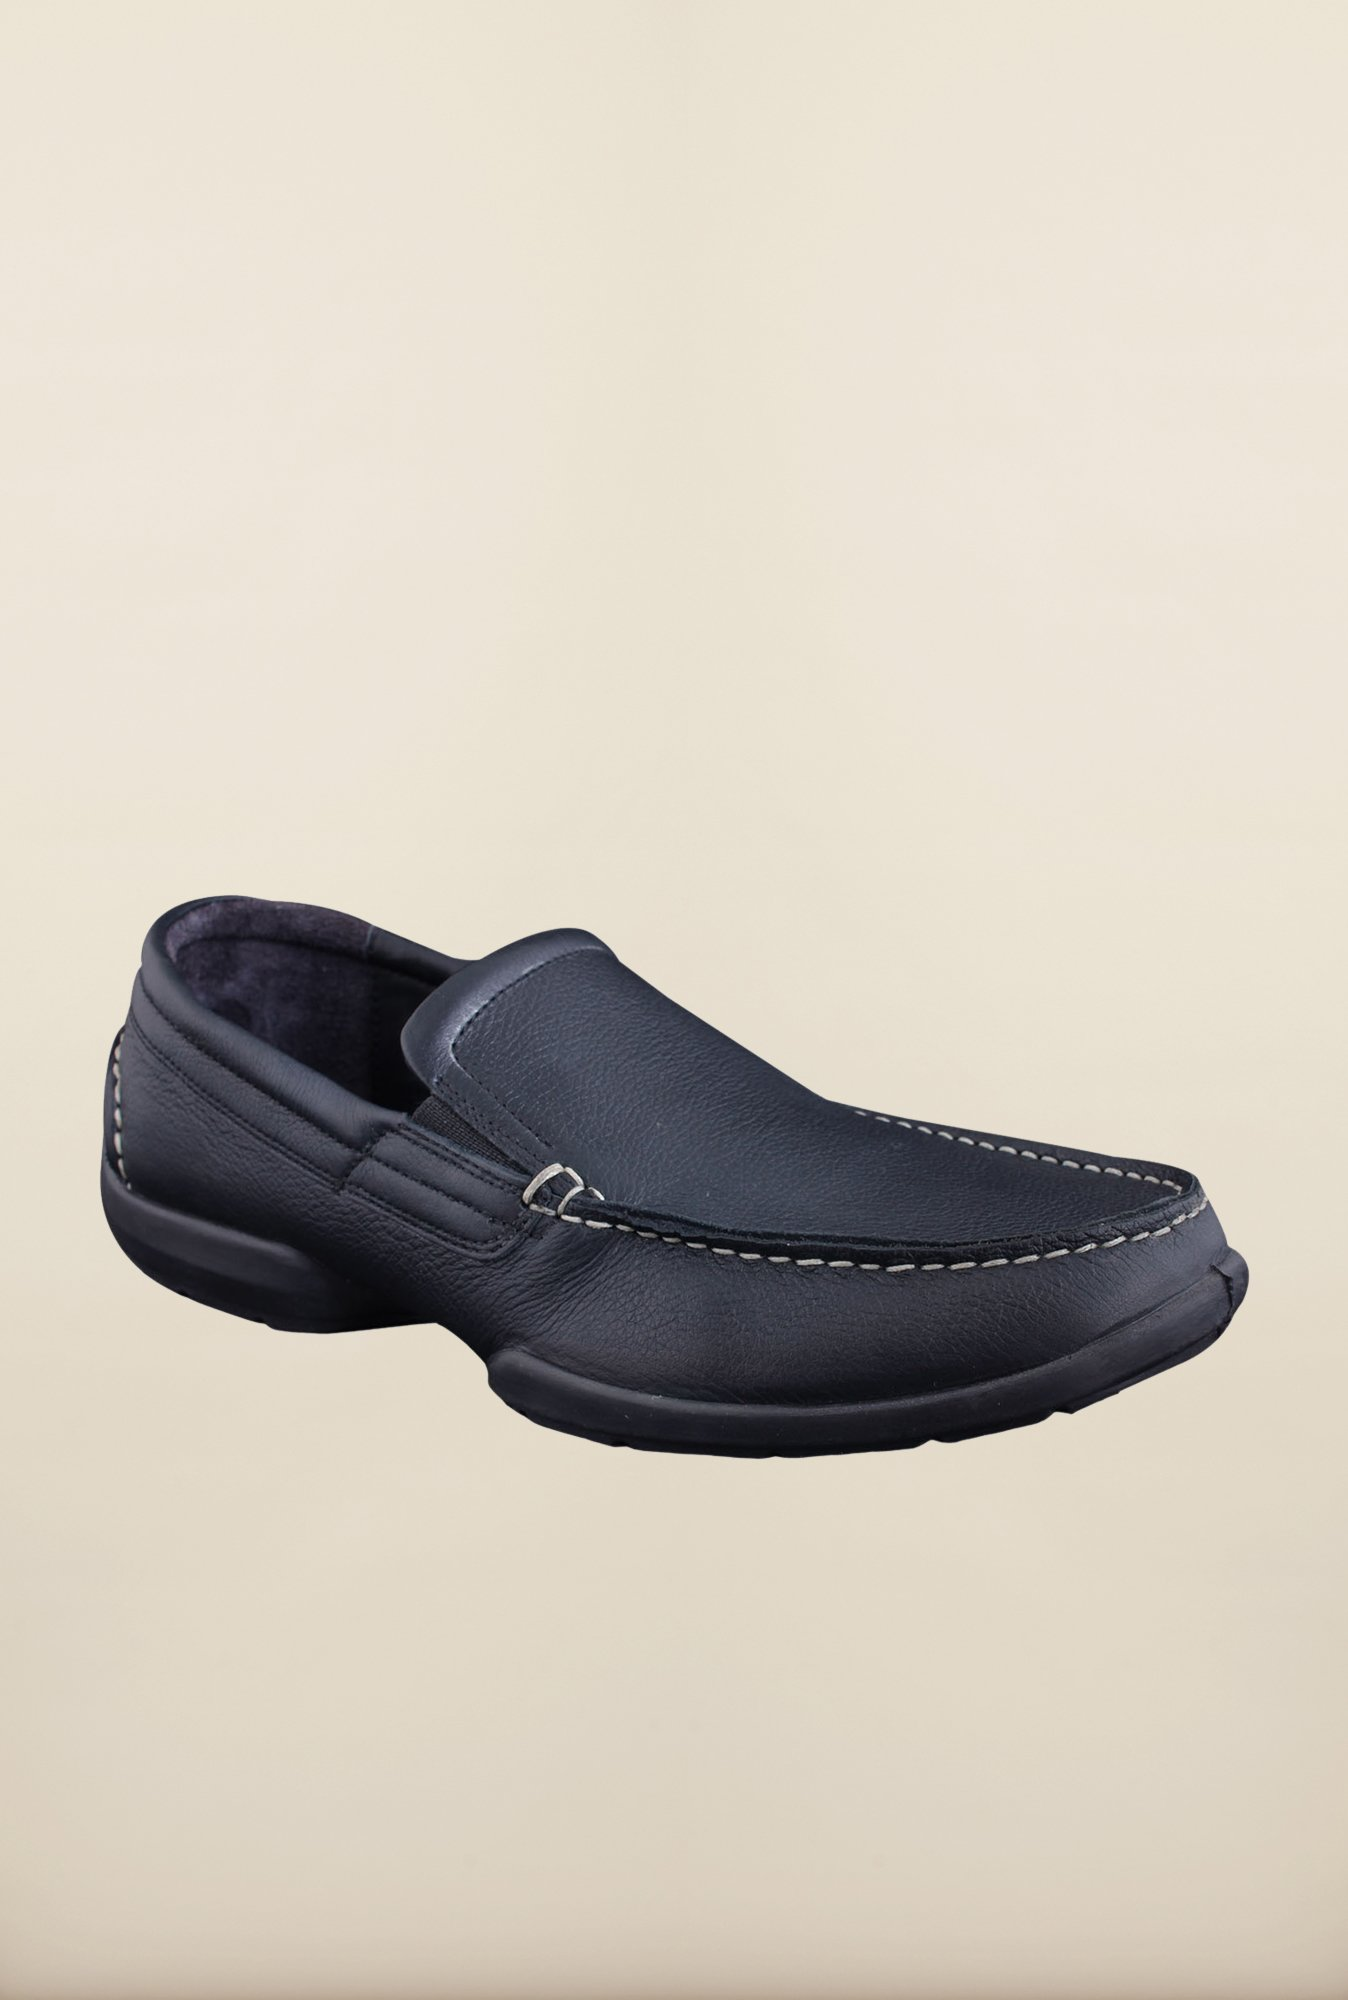 Woodland Black Loafers